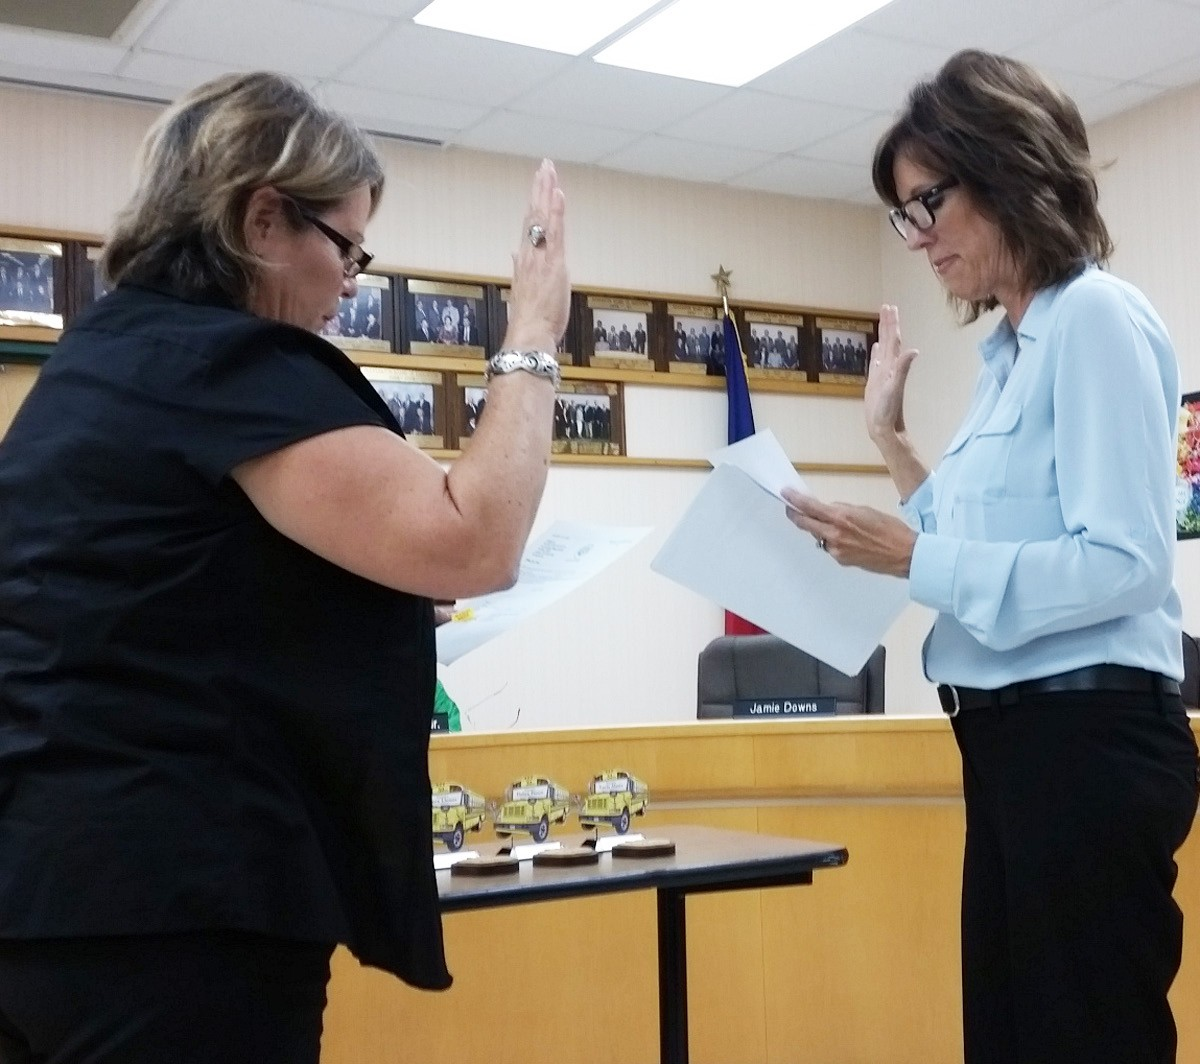 Pat Seay Cox was sworn in as a school board member for PISD by Irma Rodriguez.